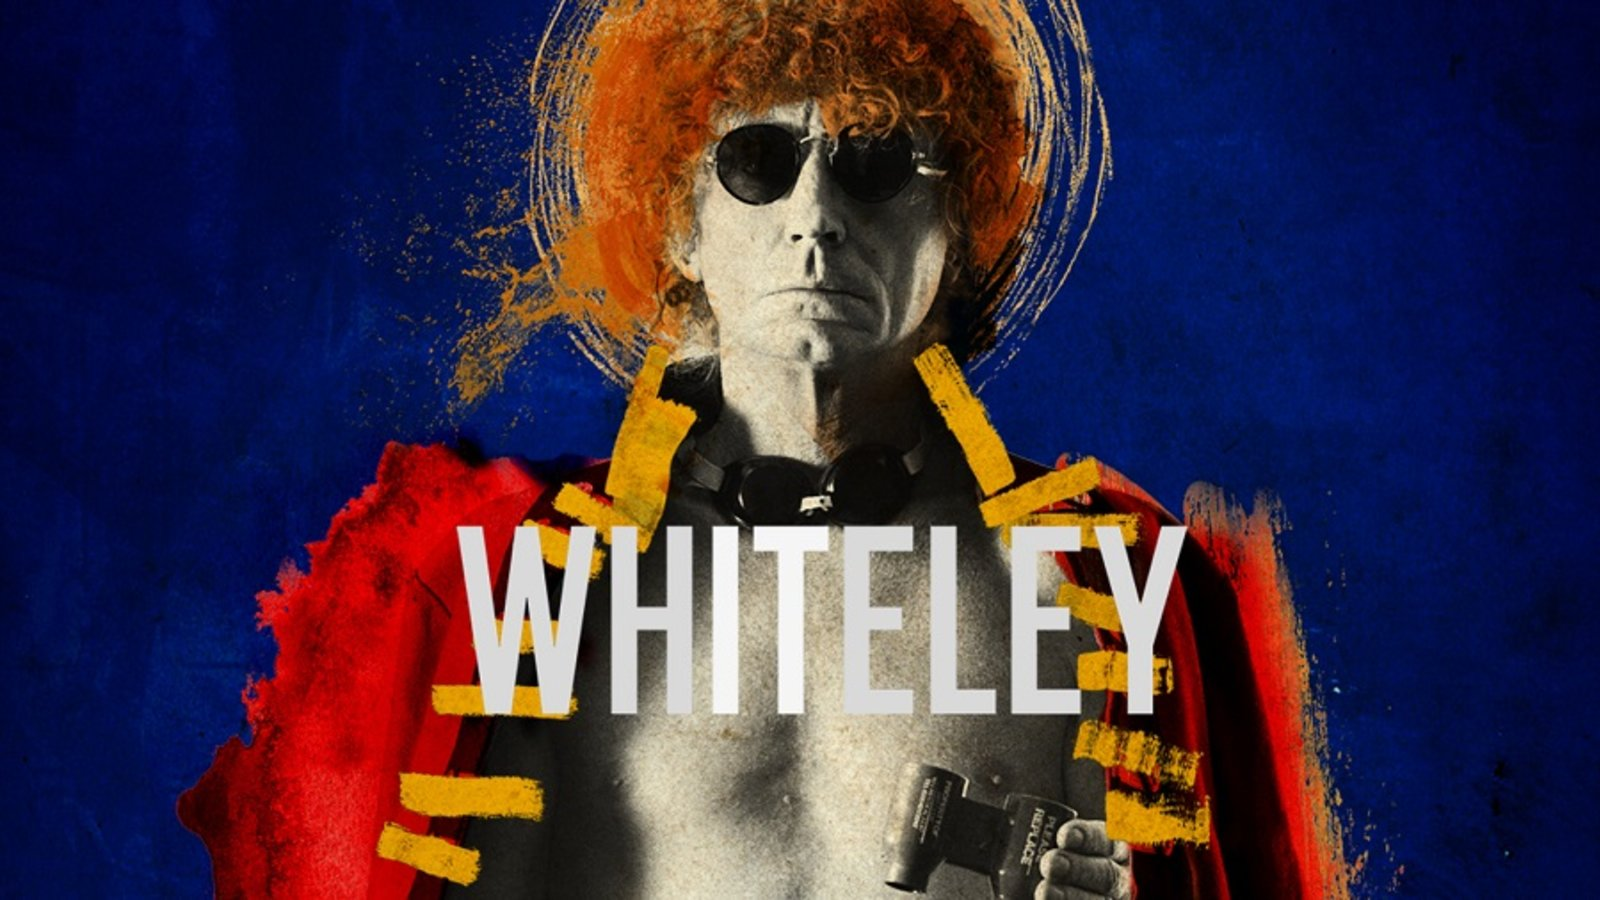 Whiteley - The Life and Legacy of One of Australia's Most Celebrated Artists